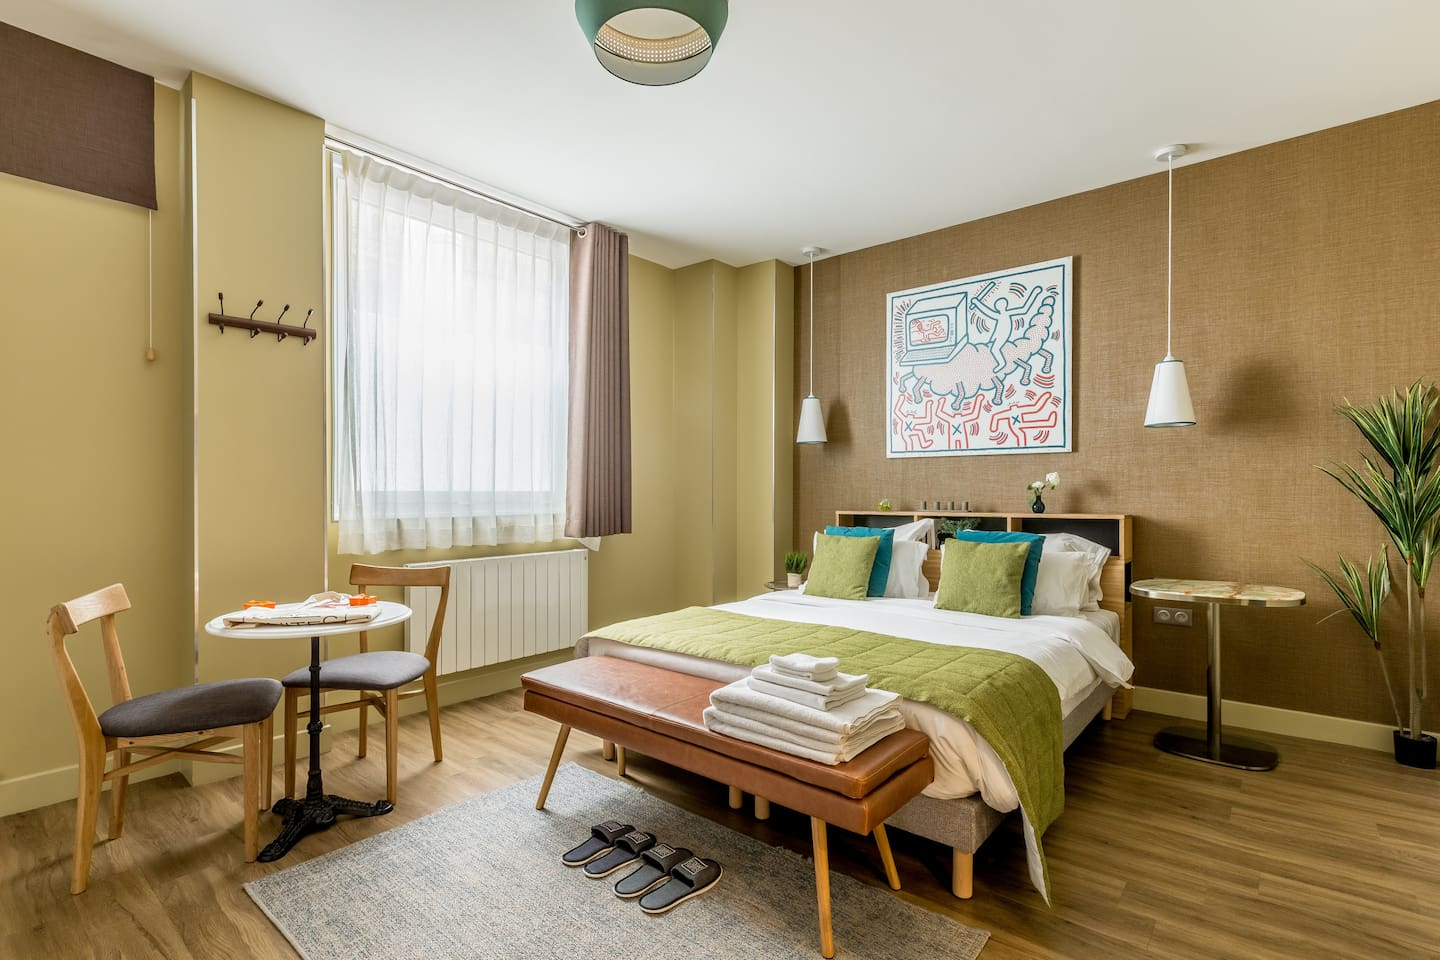 Comfortable queen size bed (160cmx190cm), TV and a desk